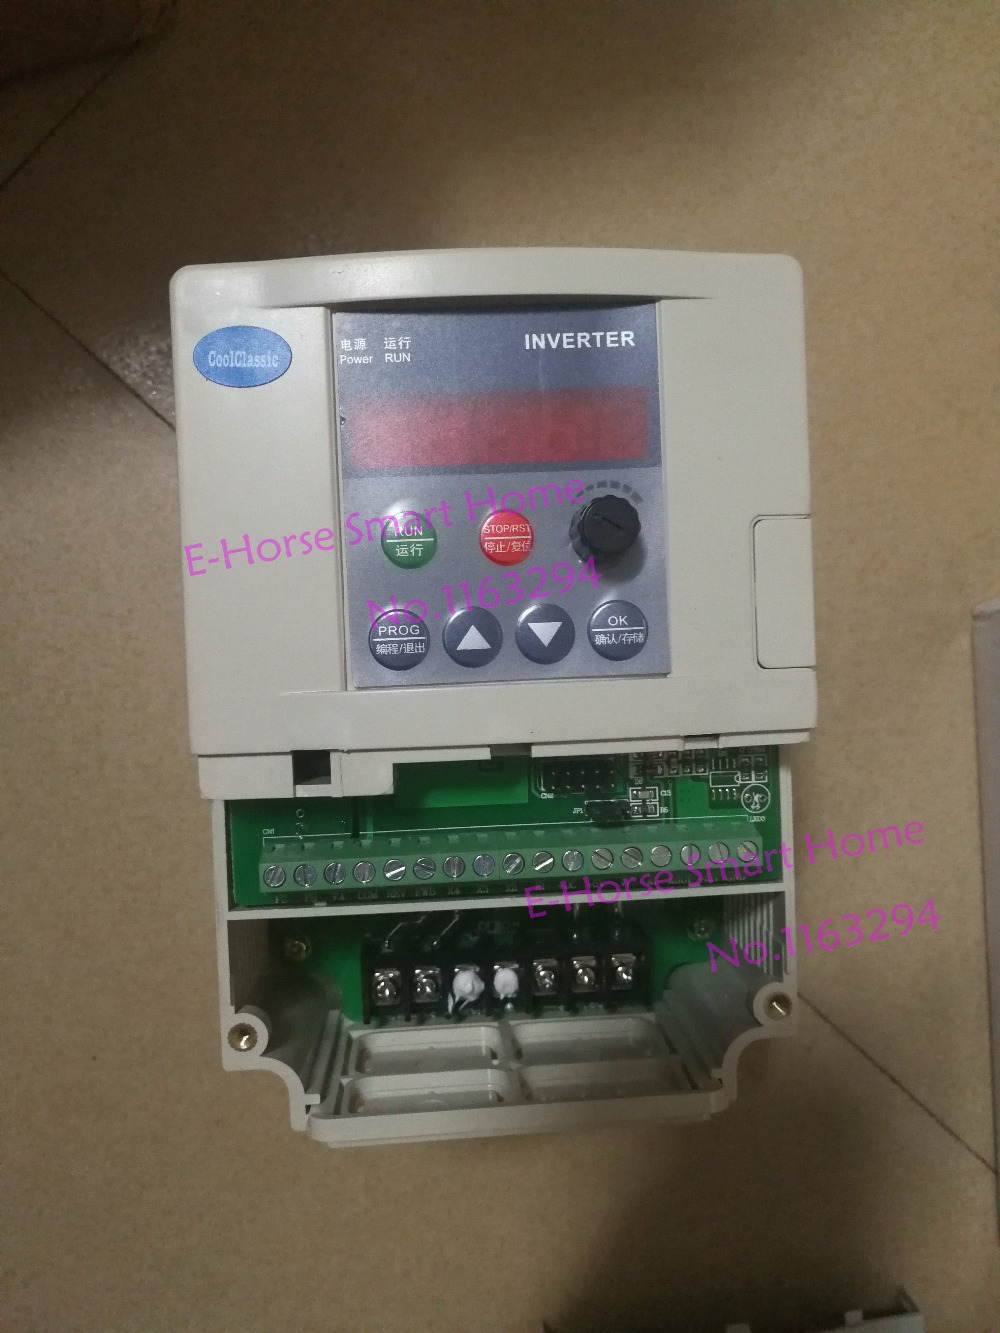 HTB1eZKDauSSBuNjy0Flq6zBpVXag - Frequency Converter ZW-S2-2T/1T 1.5KW VFD Frequency Inverter single phase Input 220v  3-phase output motor with control line